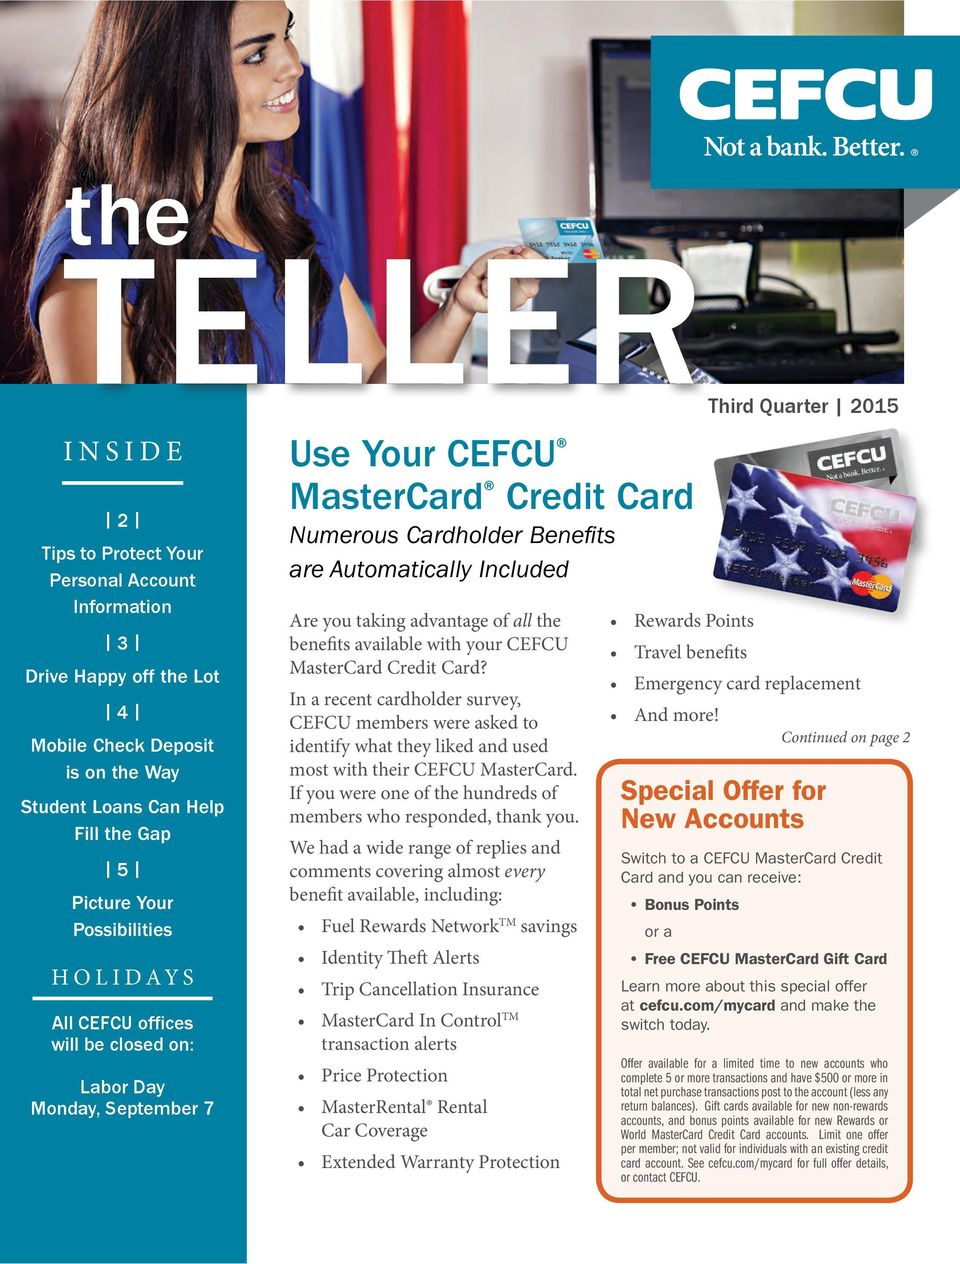 taking advantage of all the benefits available with your CEFCU MasterCard Credit Card?